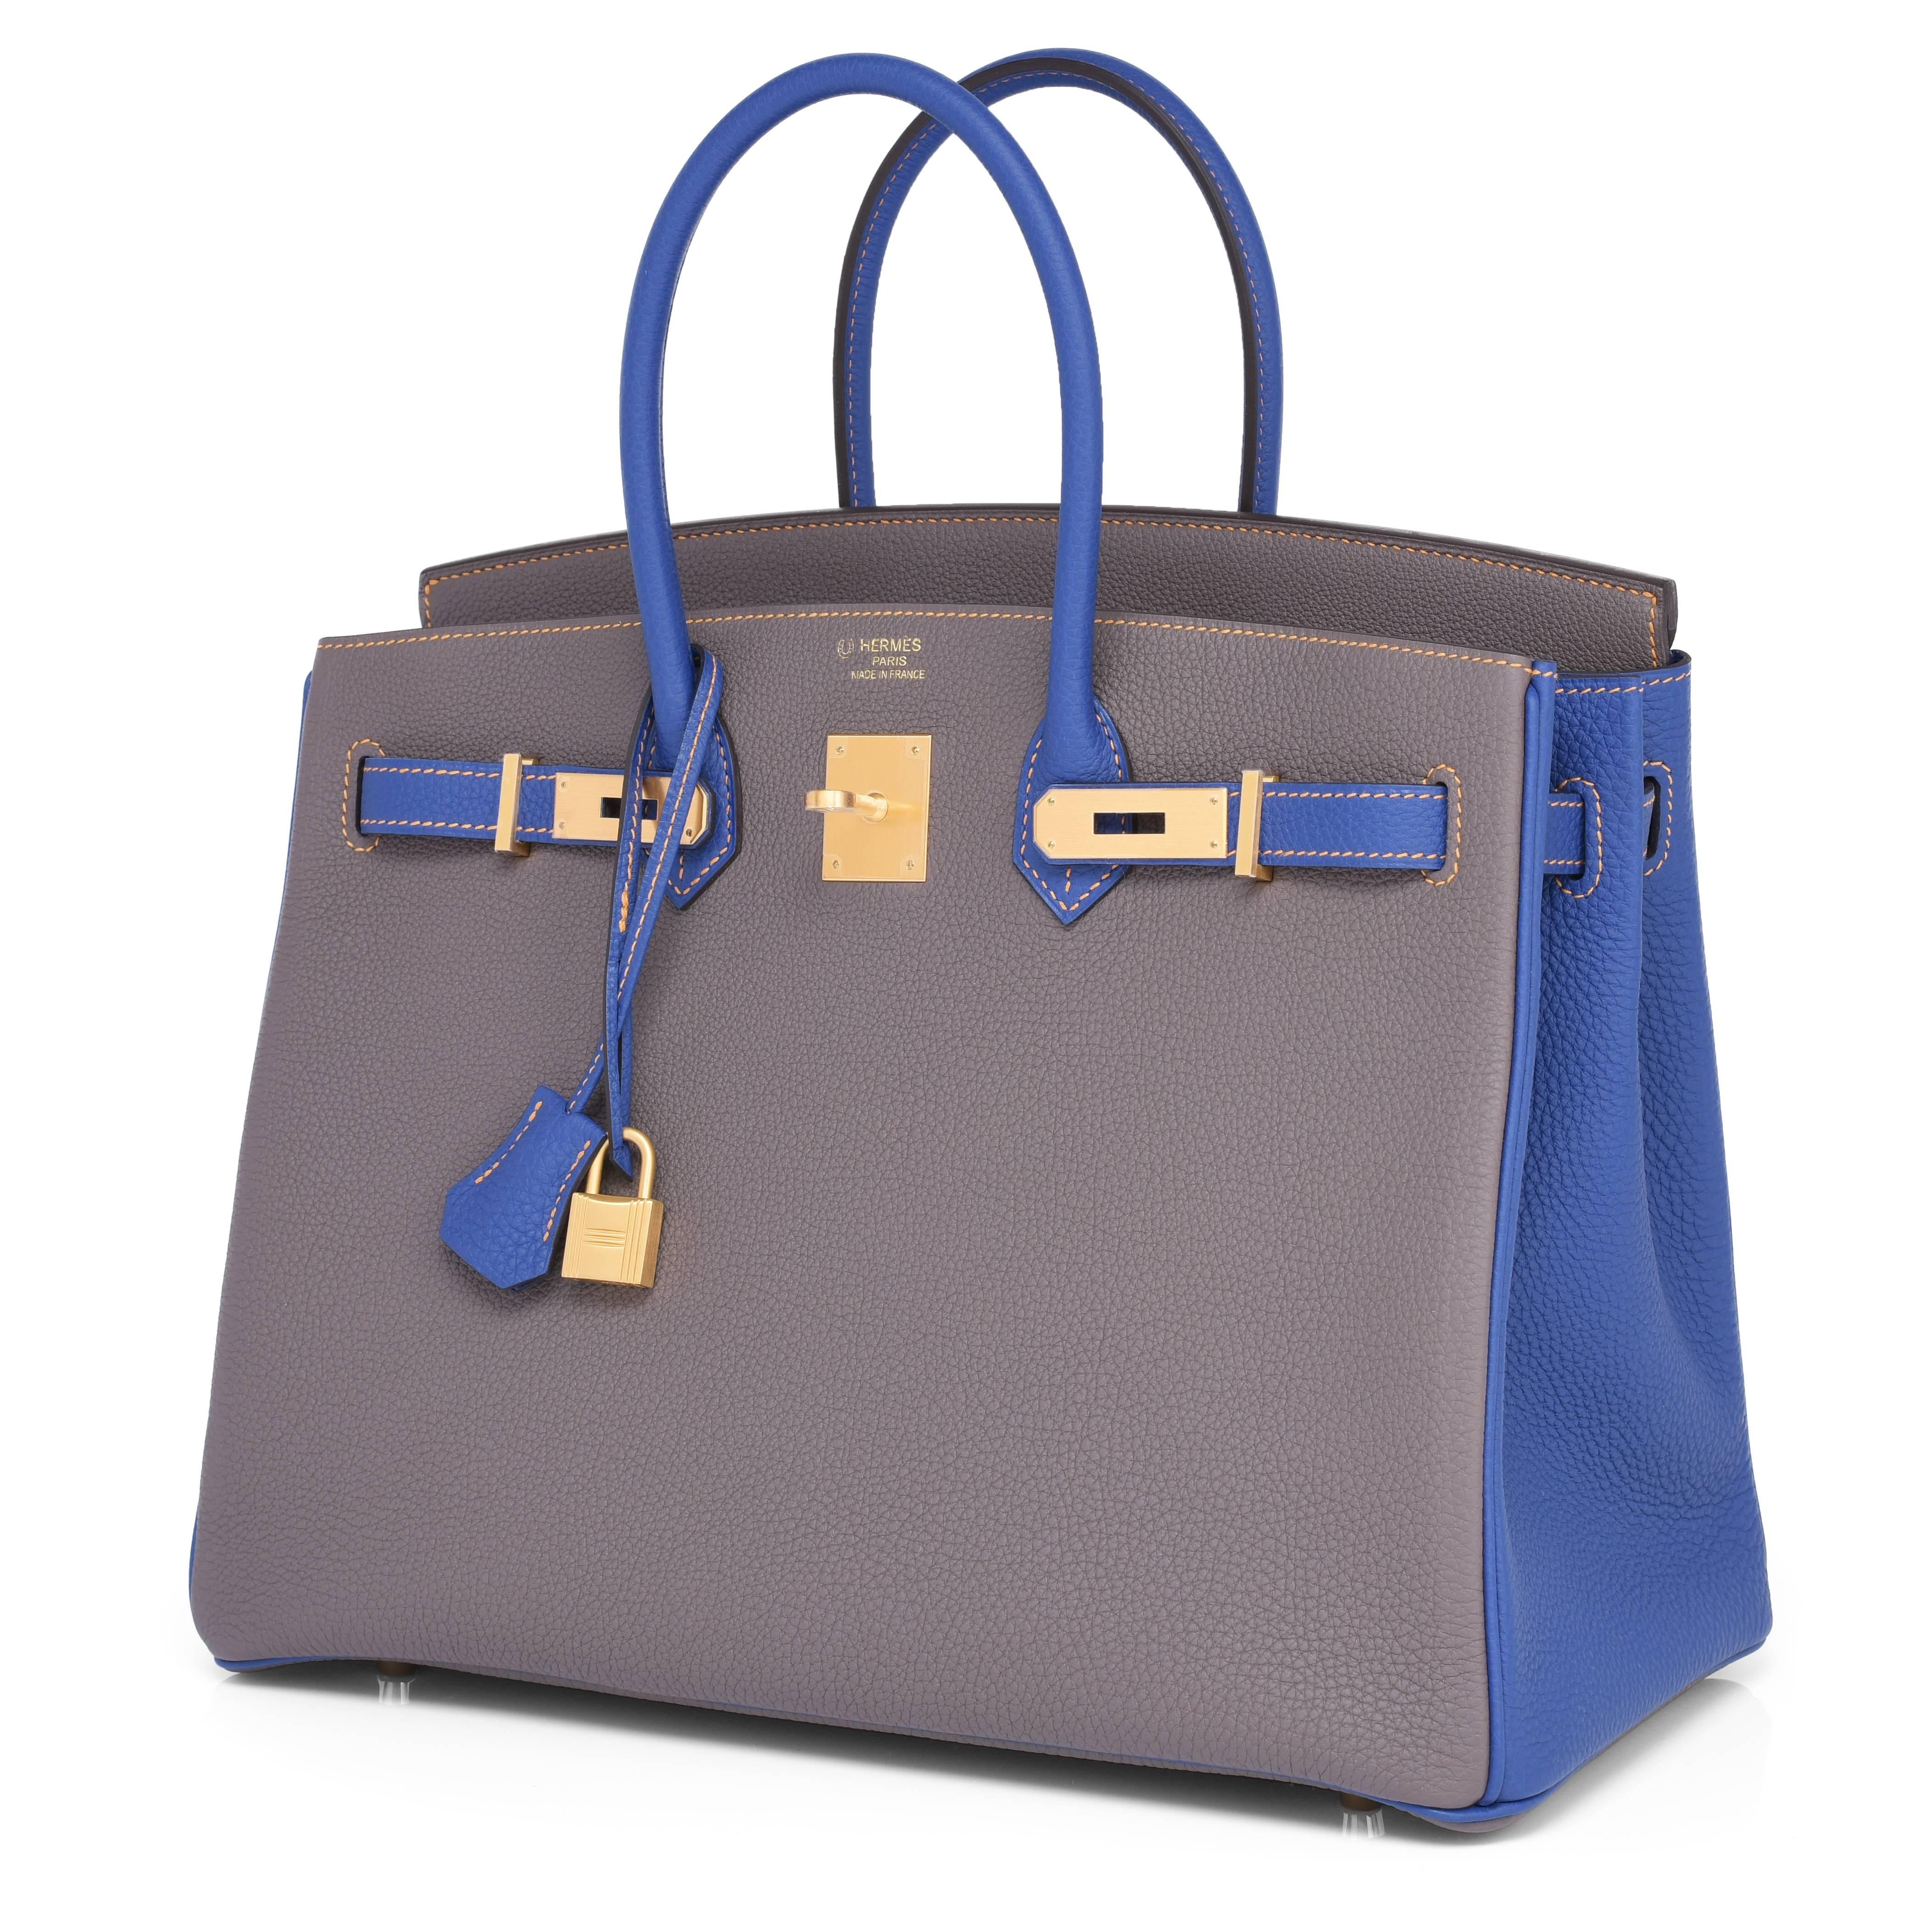 e39207d7c948 Hermes Etain Blue Electric 35cm Togo Gold Special Order Horseshoe VIP  Birkin Bag at 1stdibs